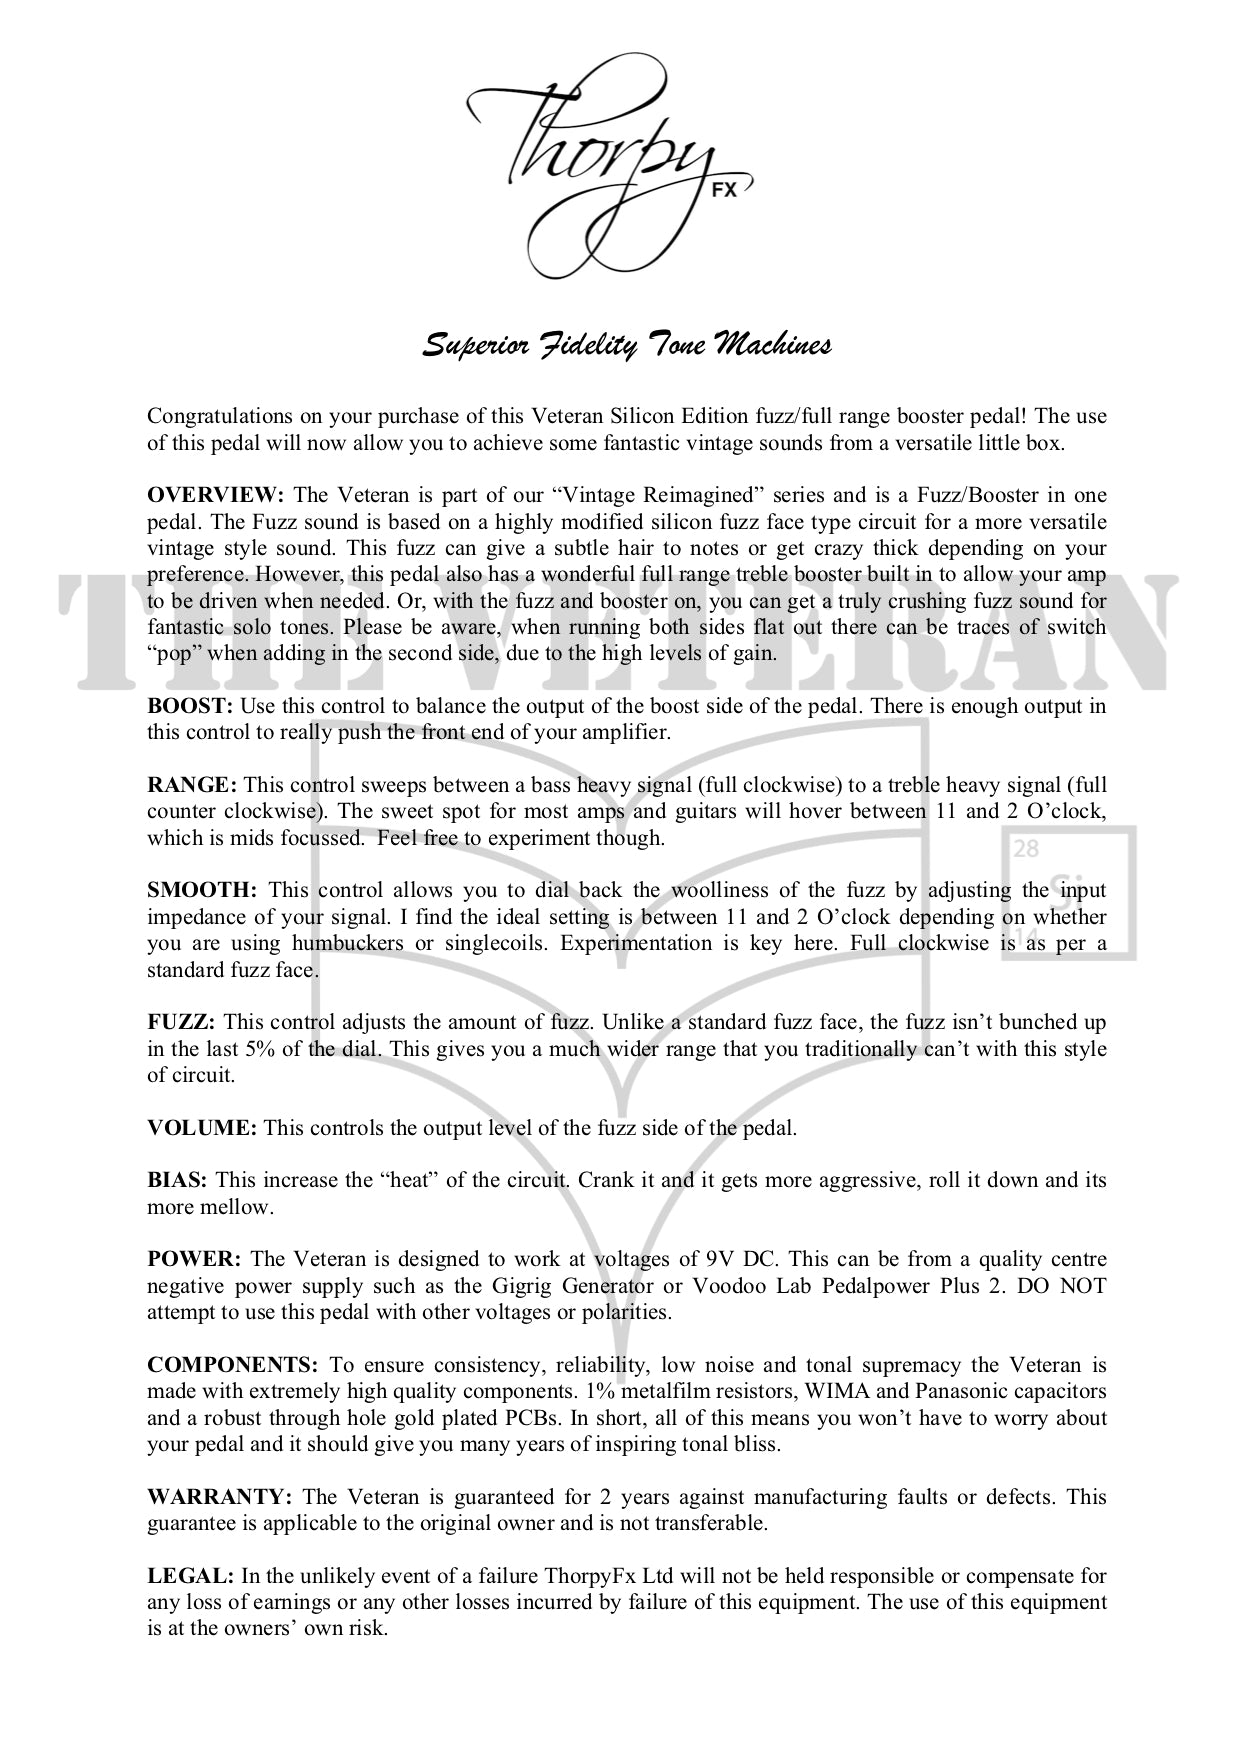 ThorpyFx Effects Operating Manuals – ThorpyFX Ltd